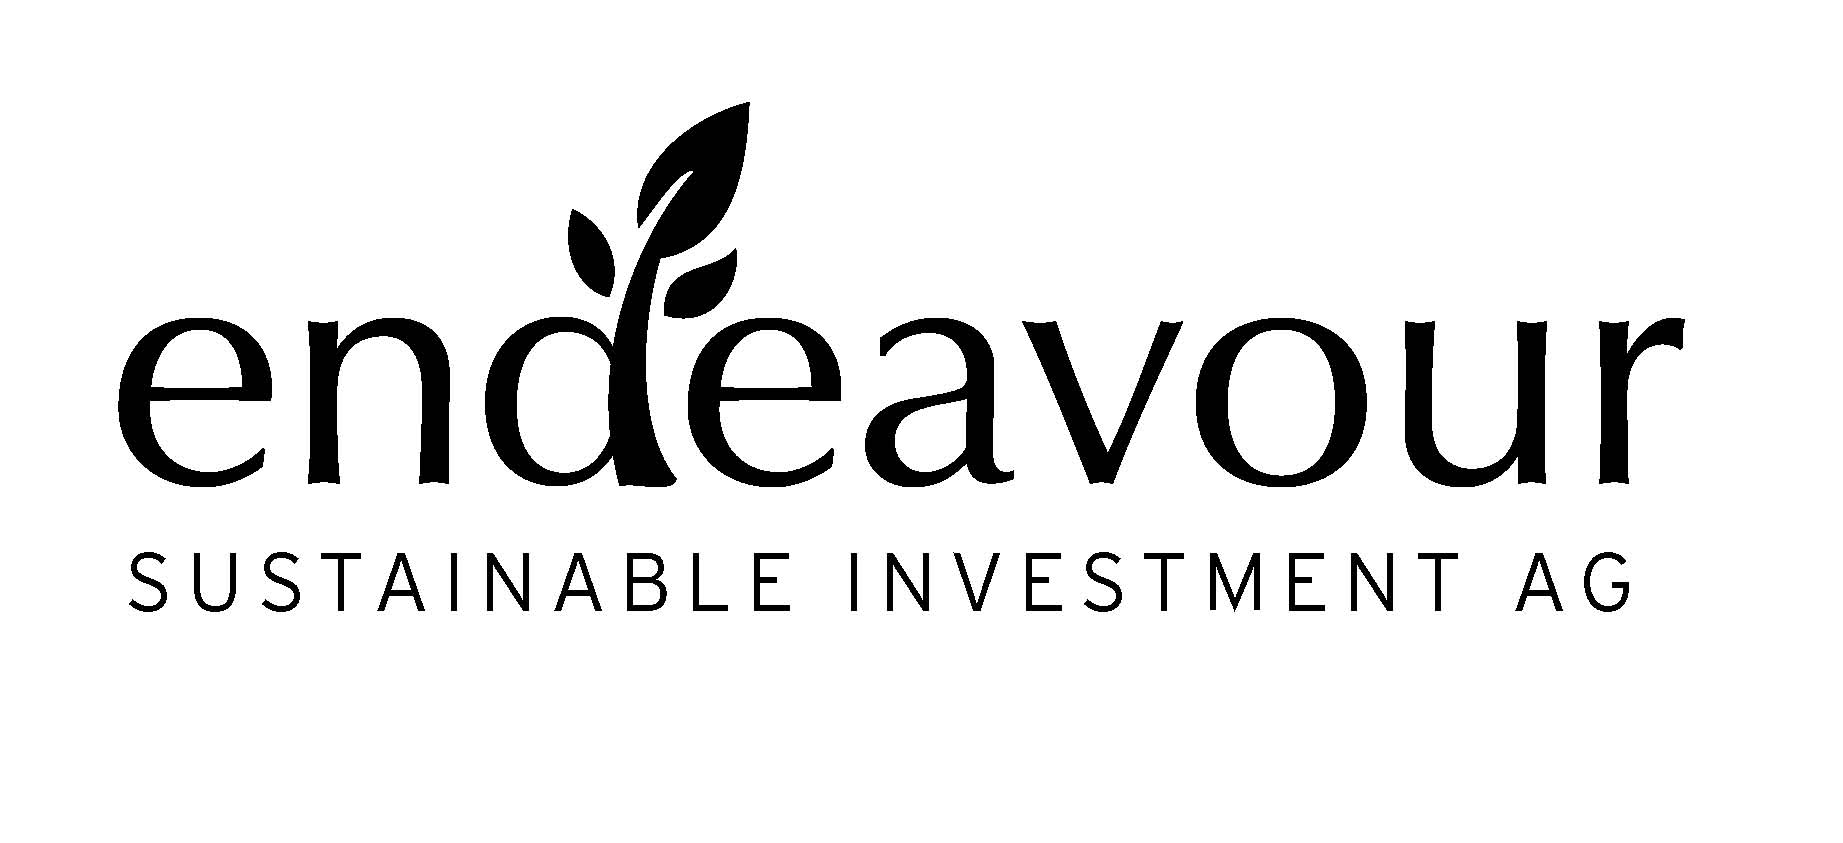 endeavour SUSTAINABLE INVESTMENT AG